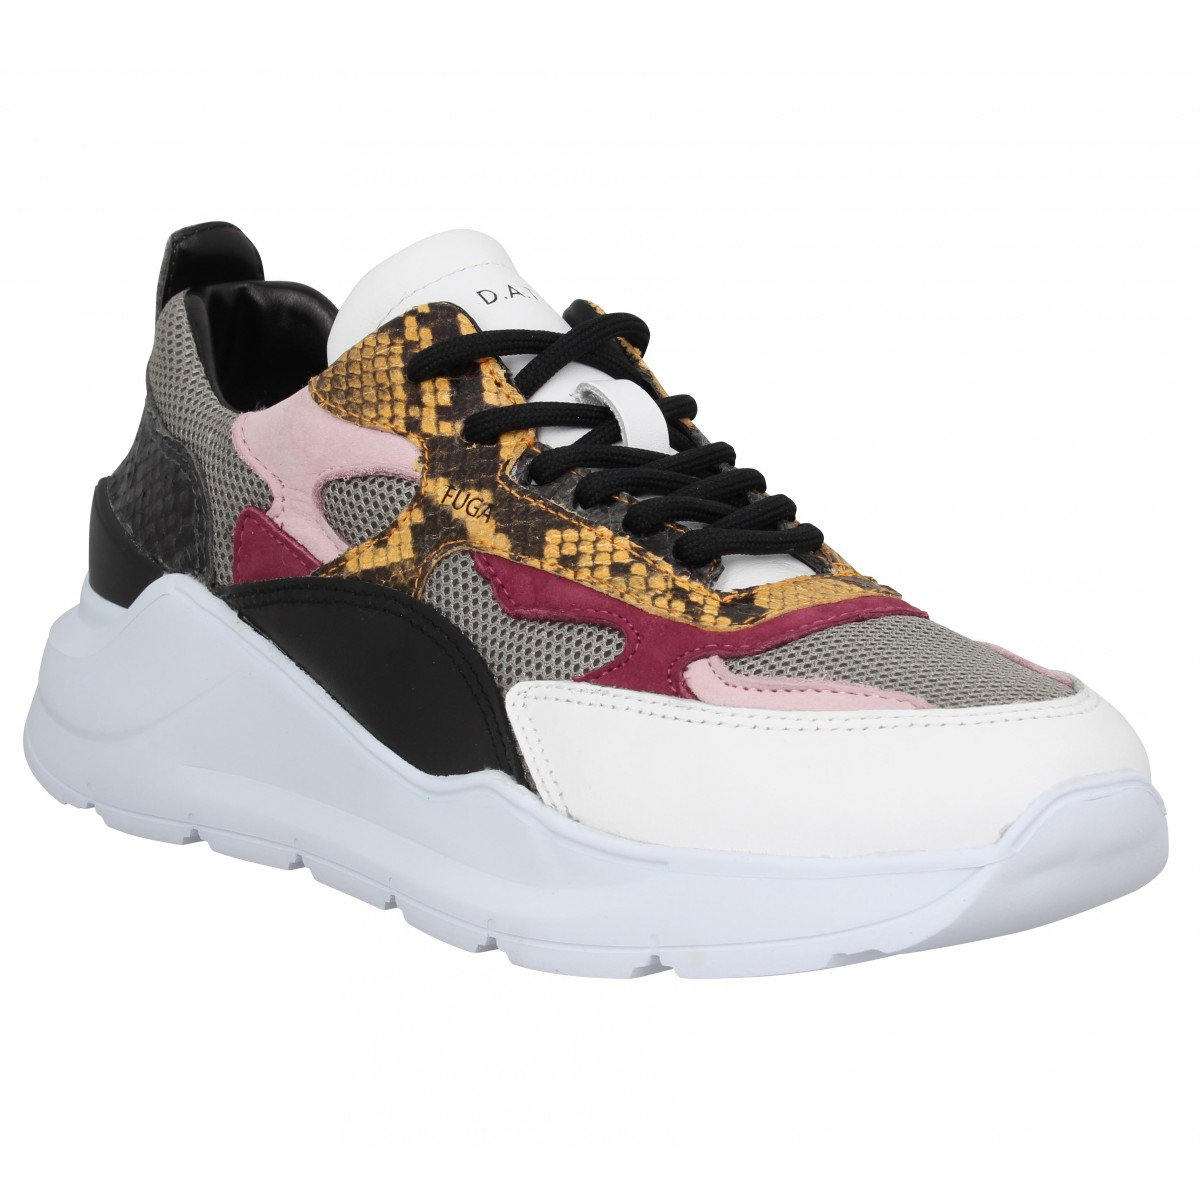 D.A.T.E Marque Date Sneakers Fuga Python...